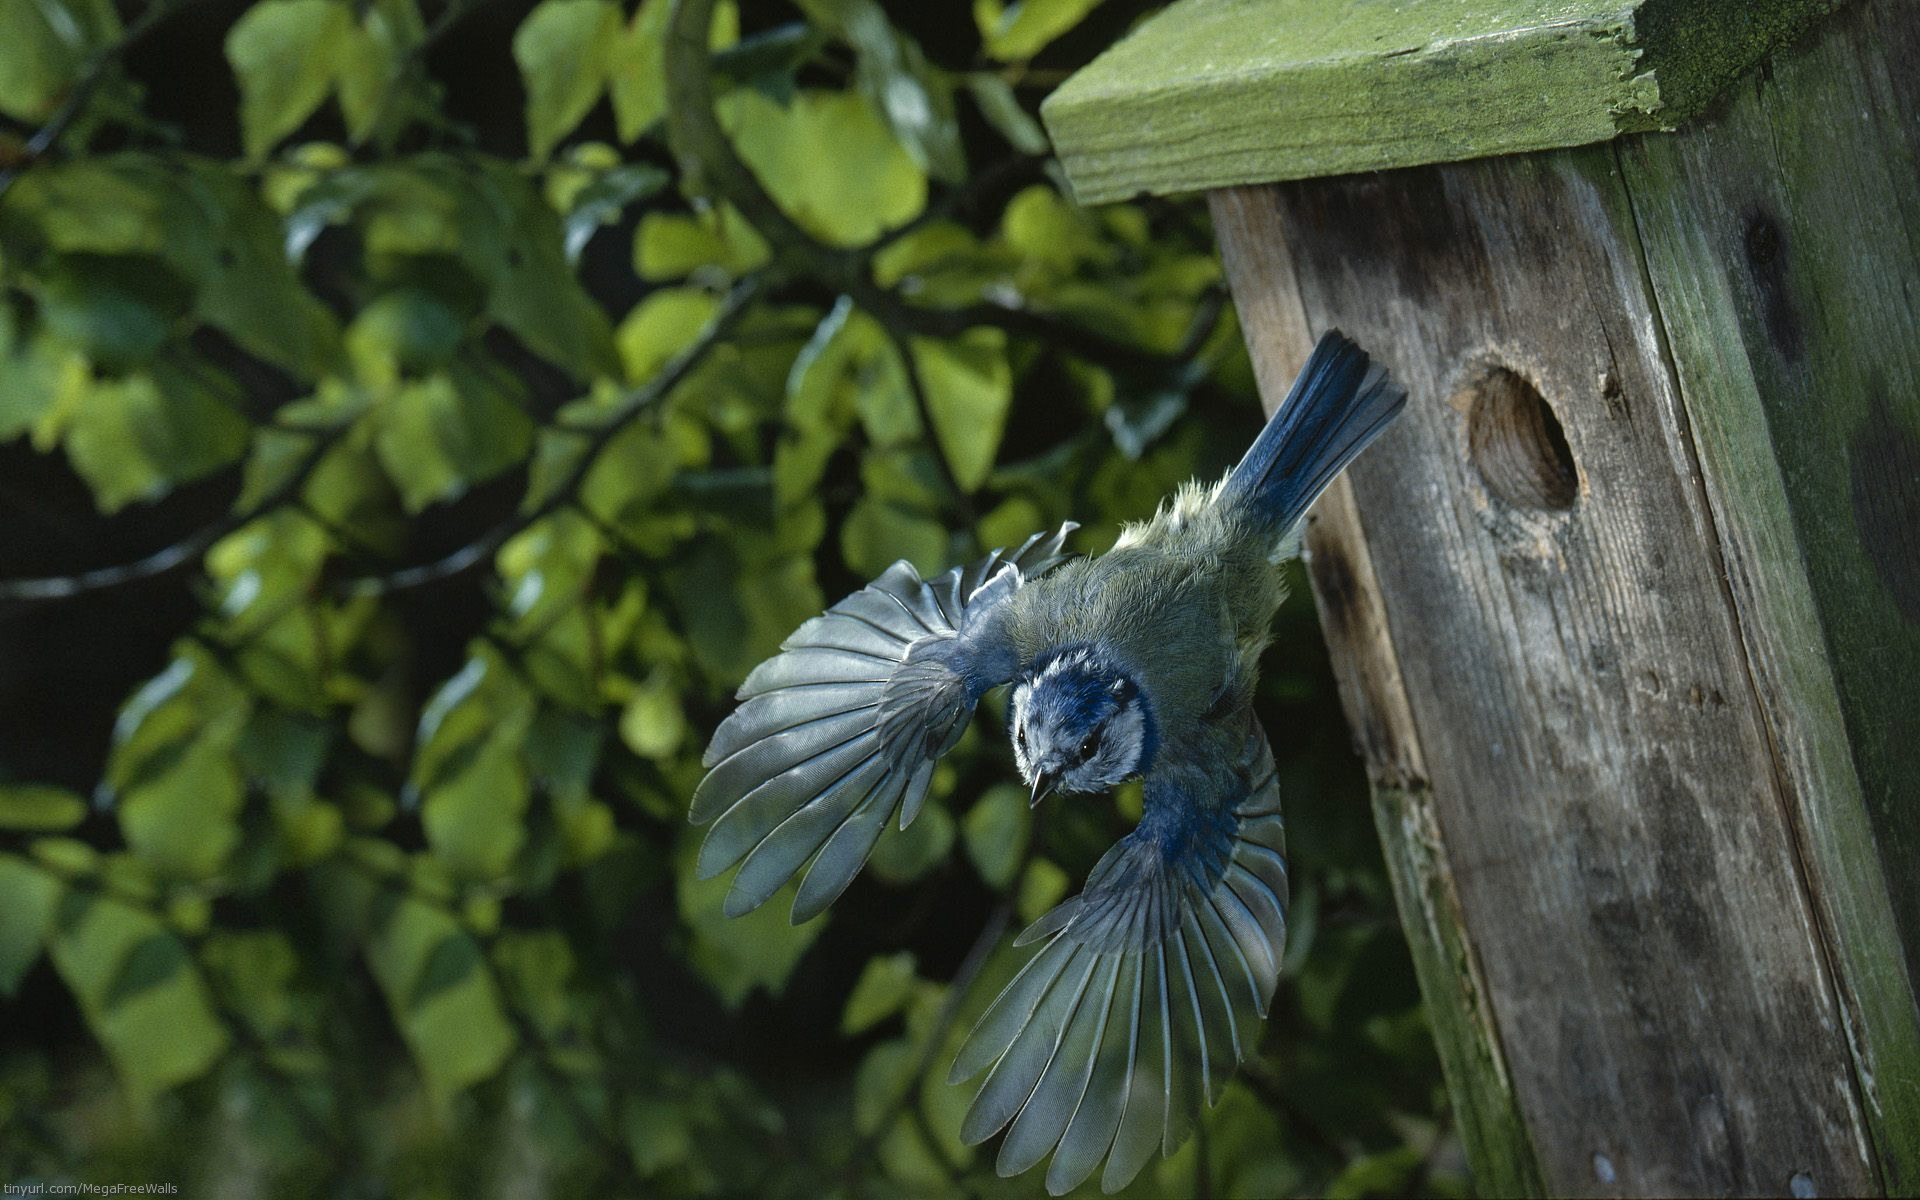 Bird Full HD Wallpaper and Background Image | 1920x1200 ...